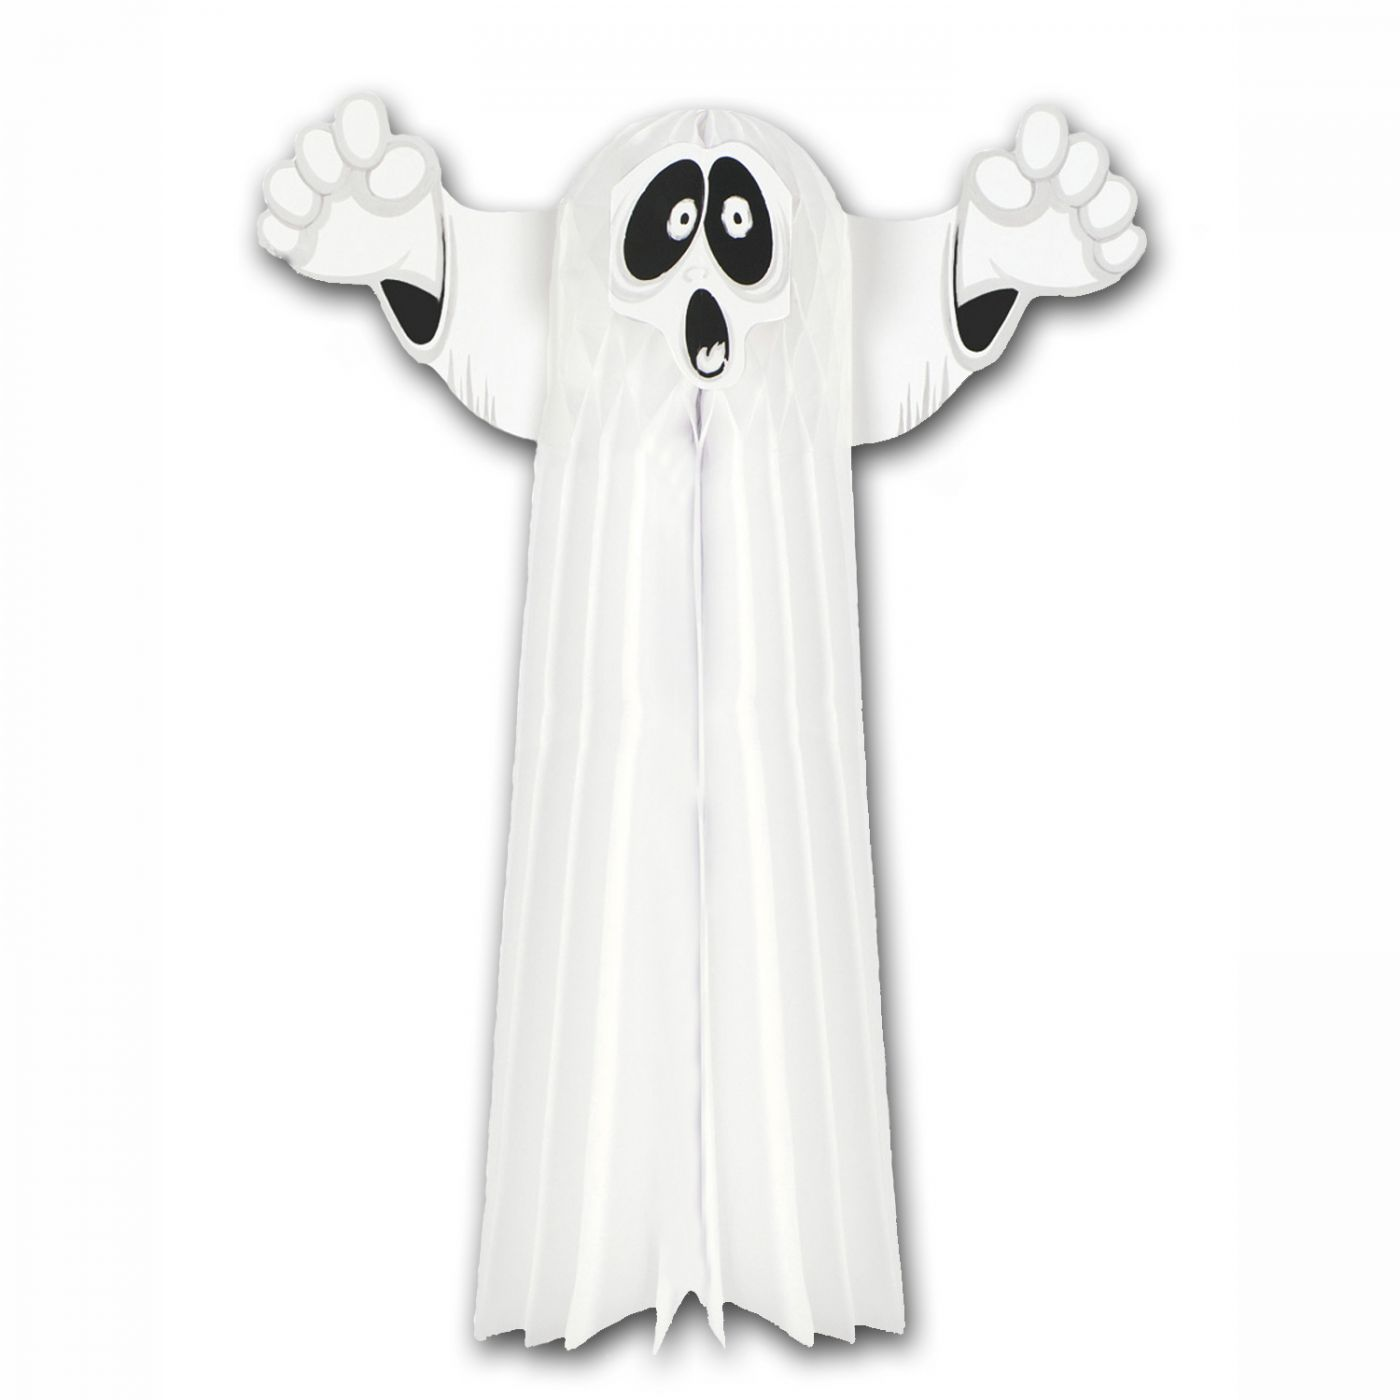 Tissue Hanging Ghost image